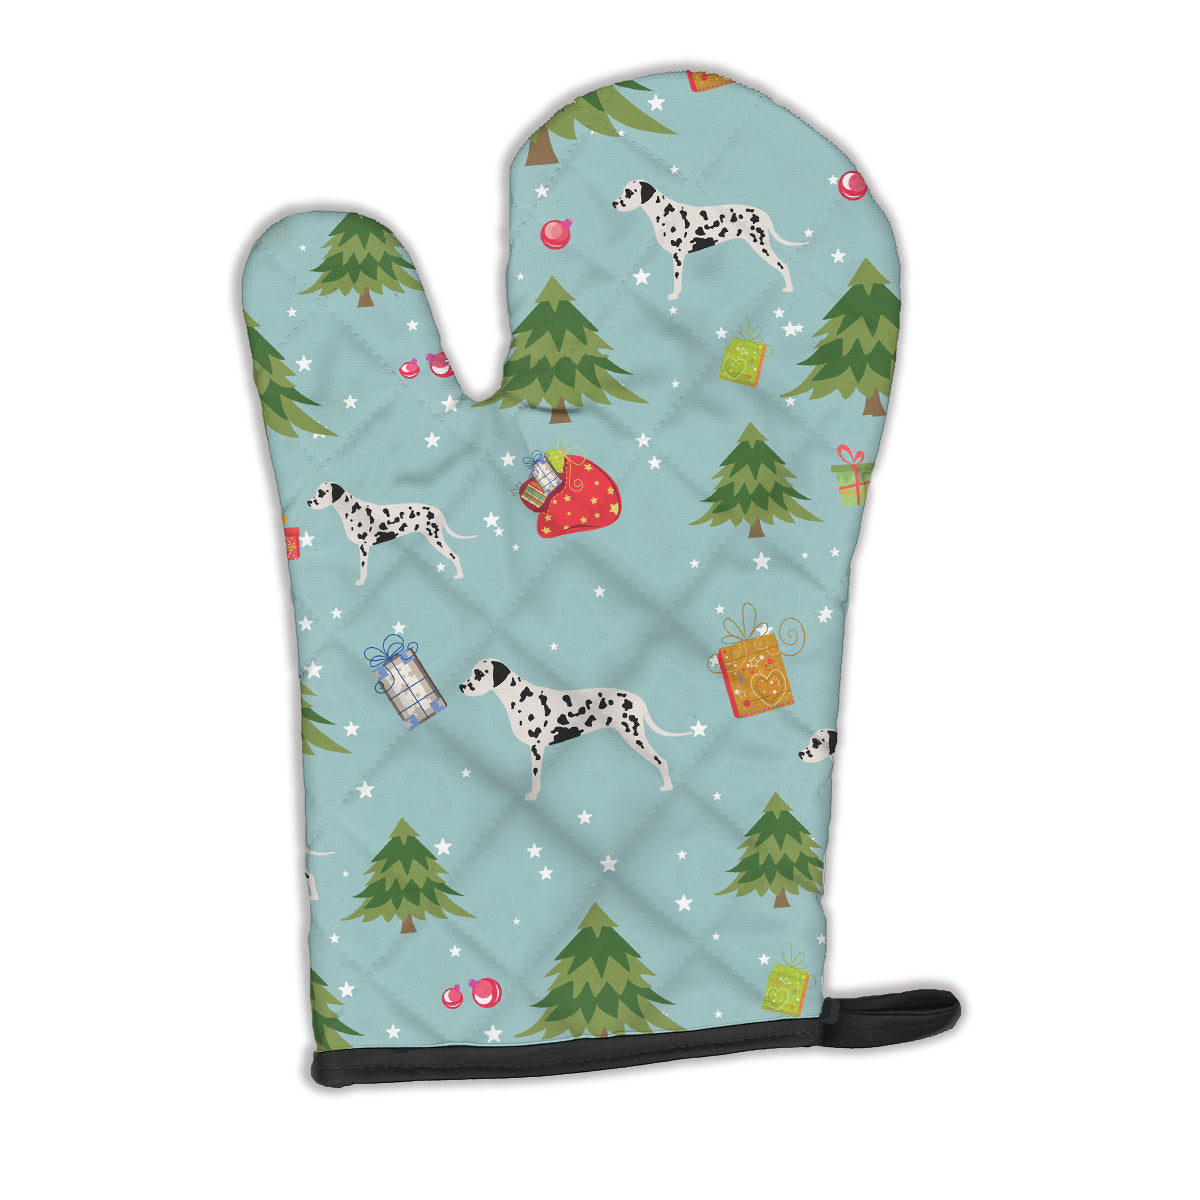 Christmas Dalmatian Oven Mitt BB4807OVMT by Caroline's Treasures